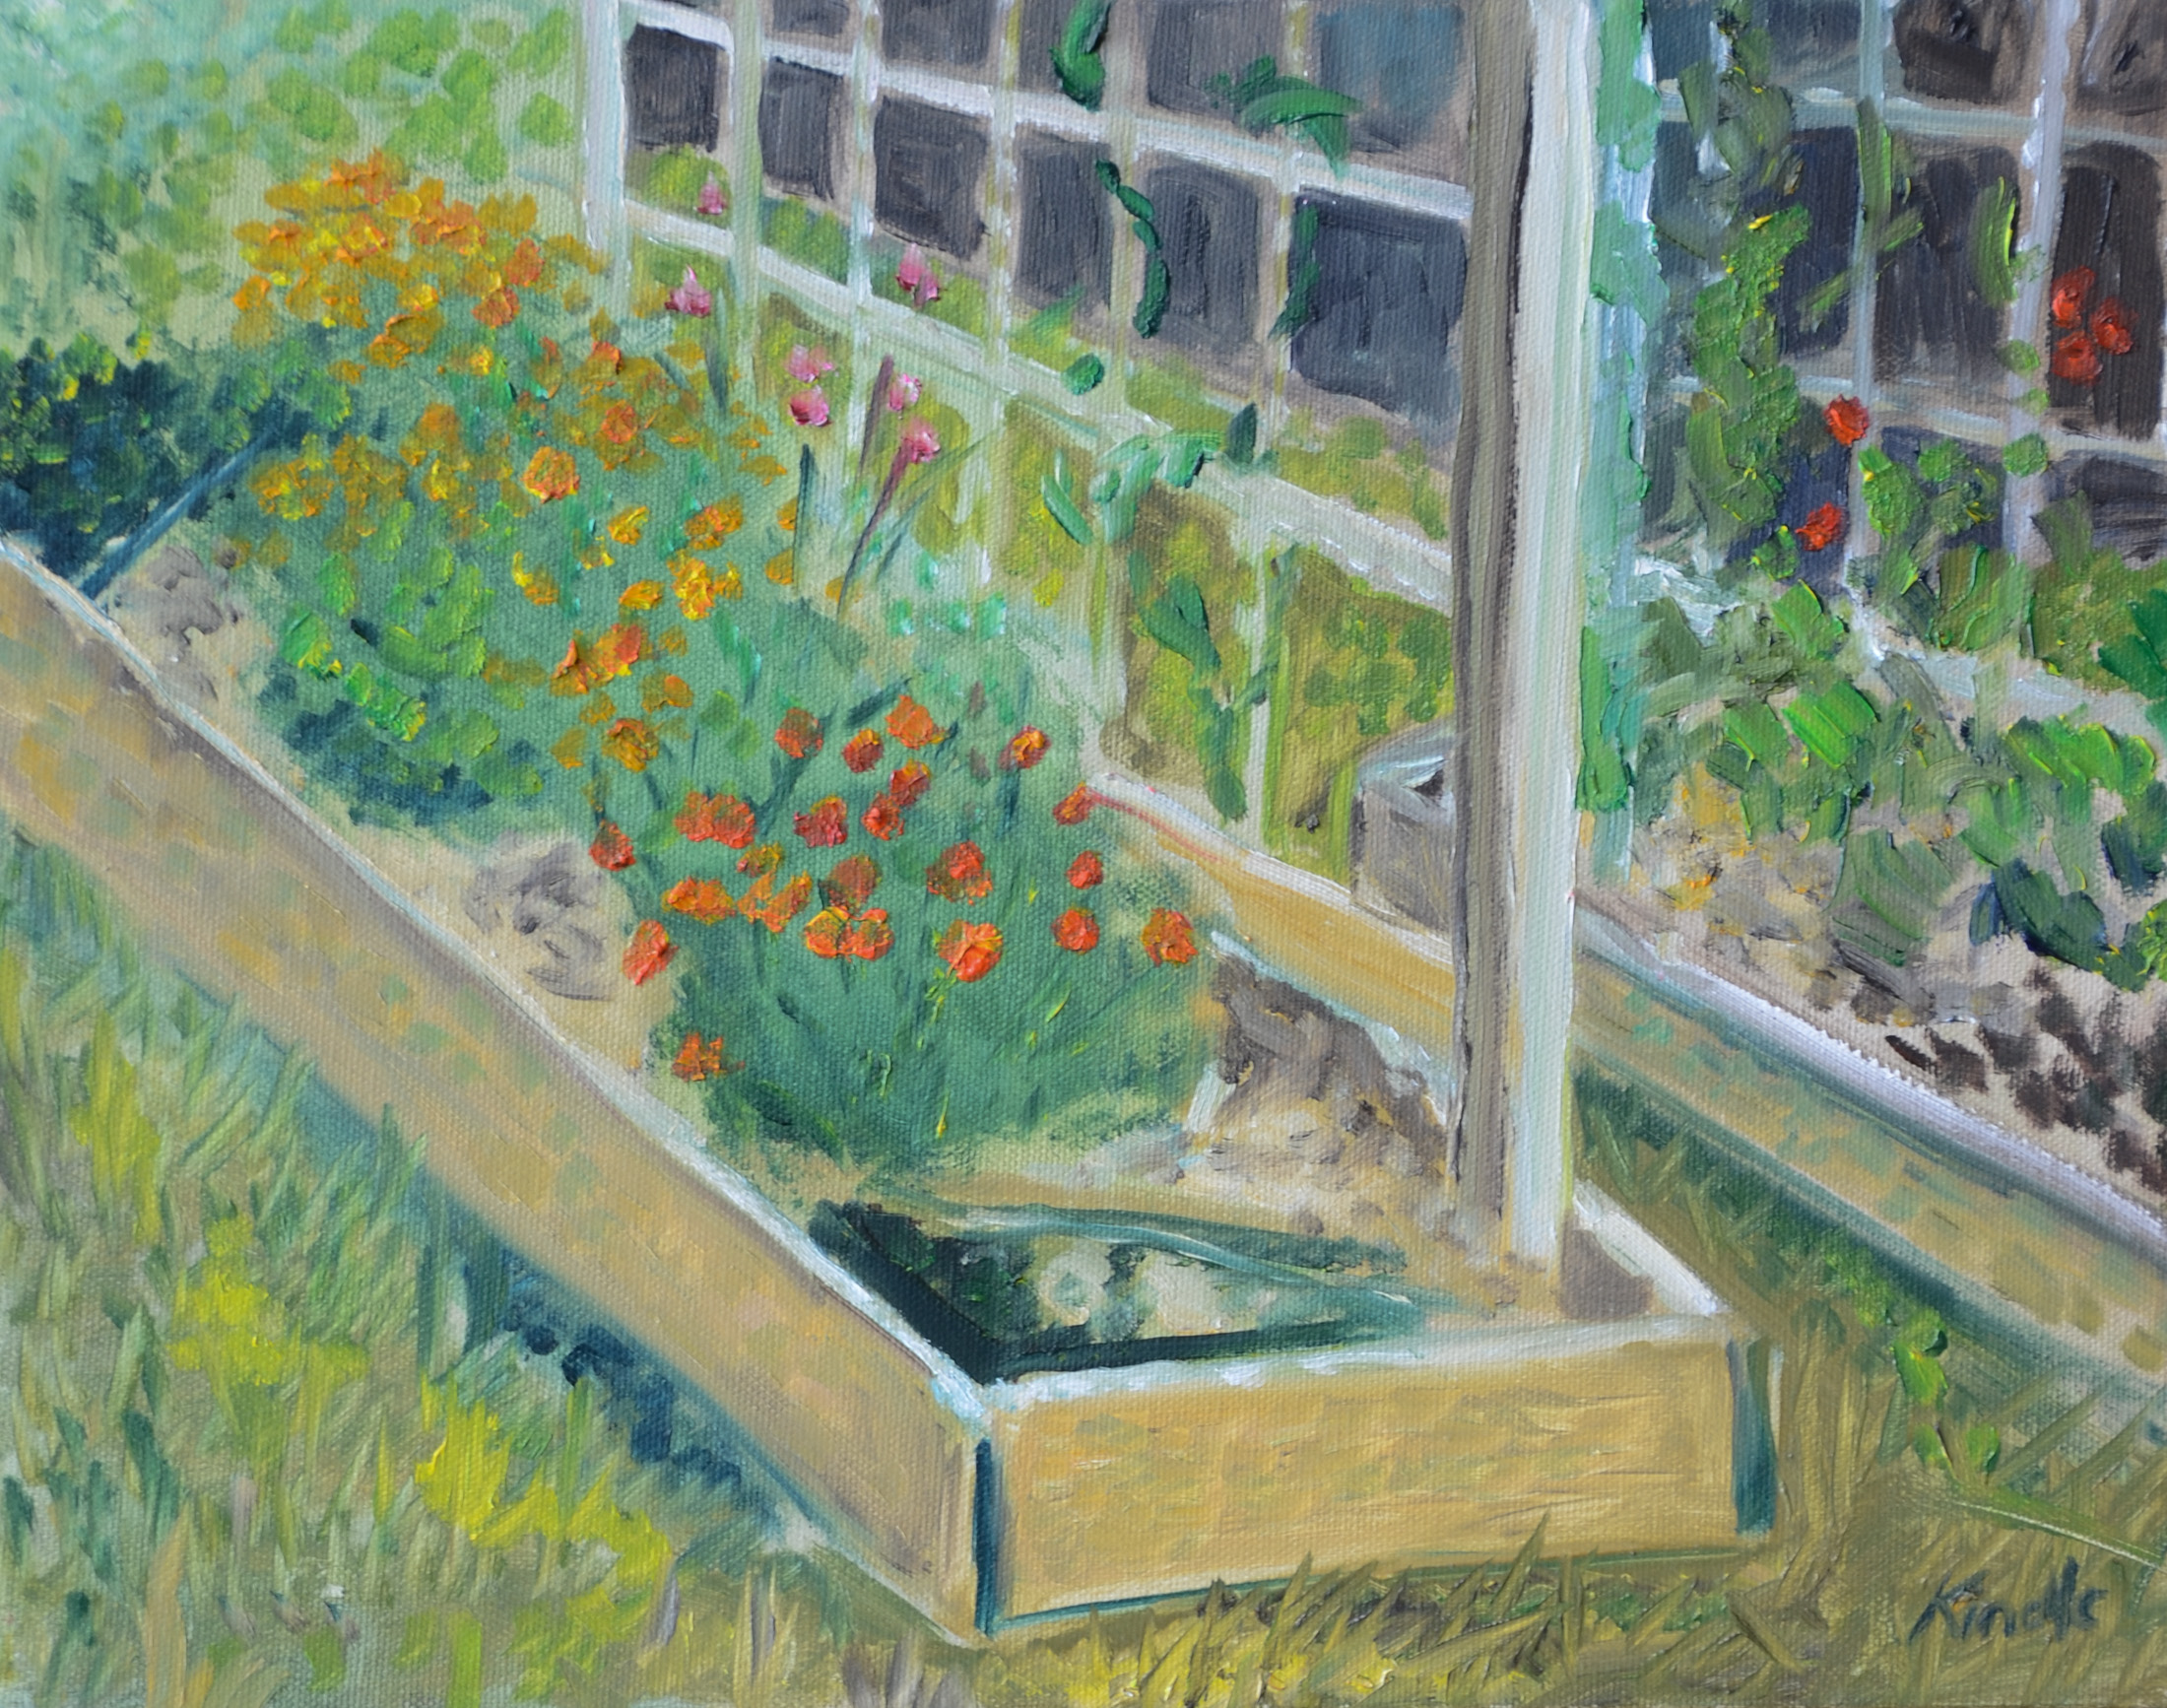 """Community Garden Marigolds"" oil on canvas, 8x10""  (From the private collection of Katherine Johnstone)"